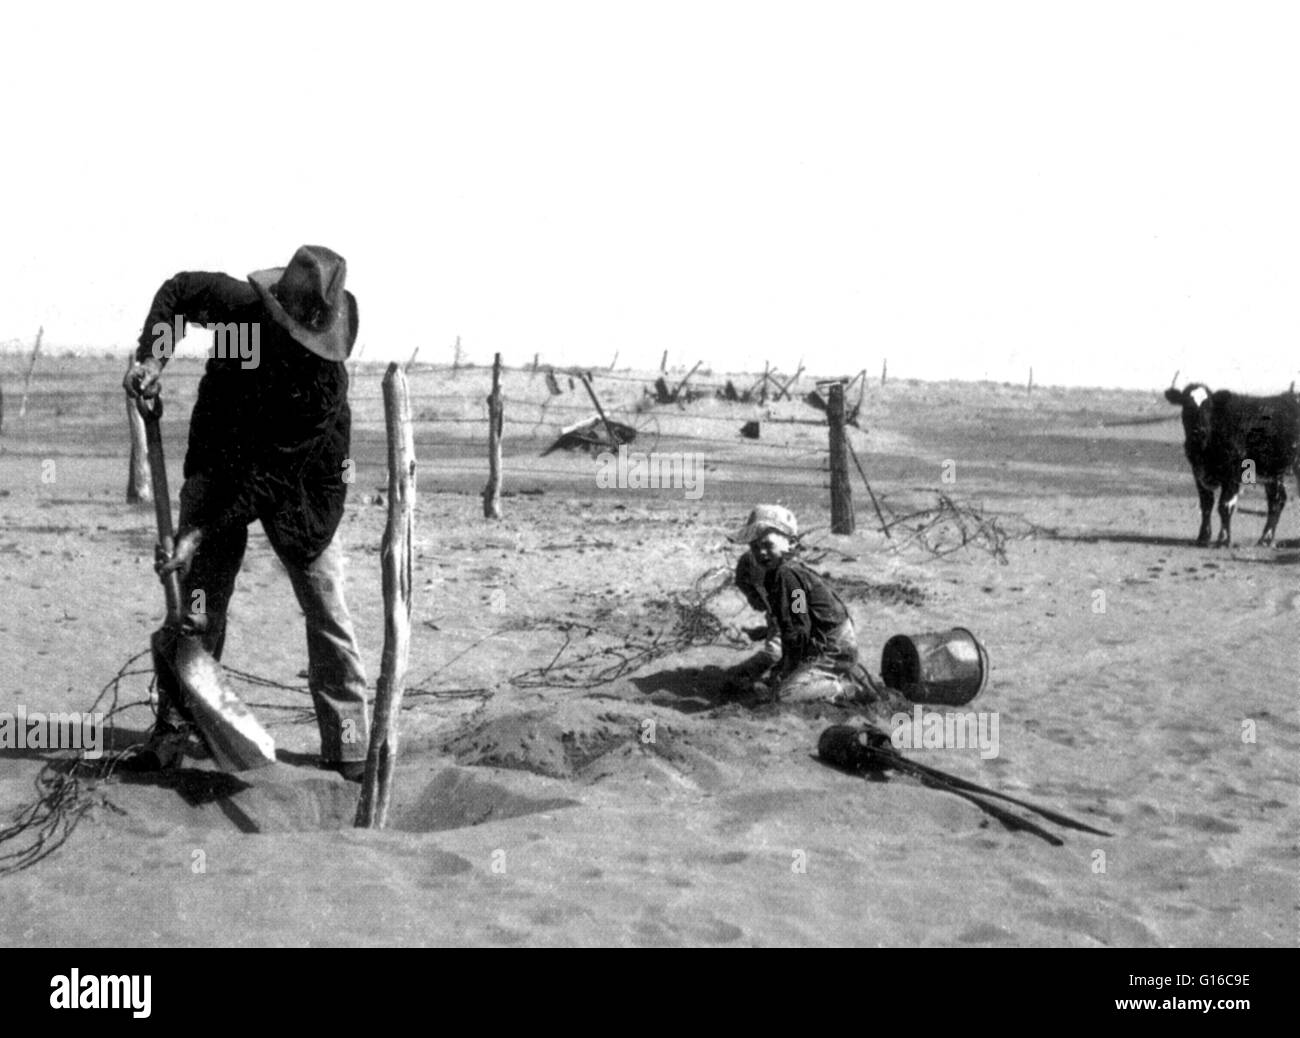 His fence overwhelmed by drifting sand, farmer digs out a post. Drought was terrible for livestock. Pastures vanished - Stock Image